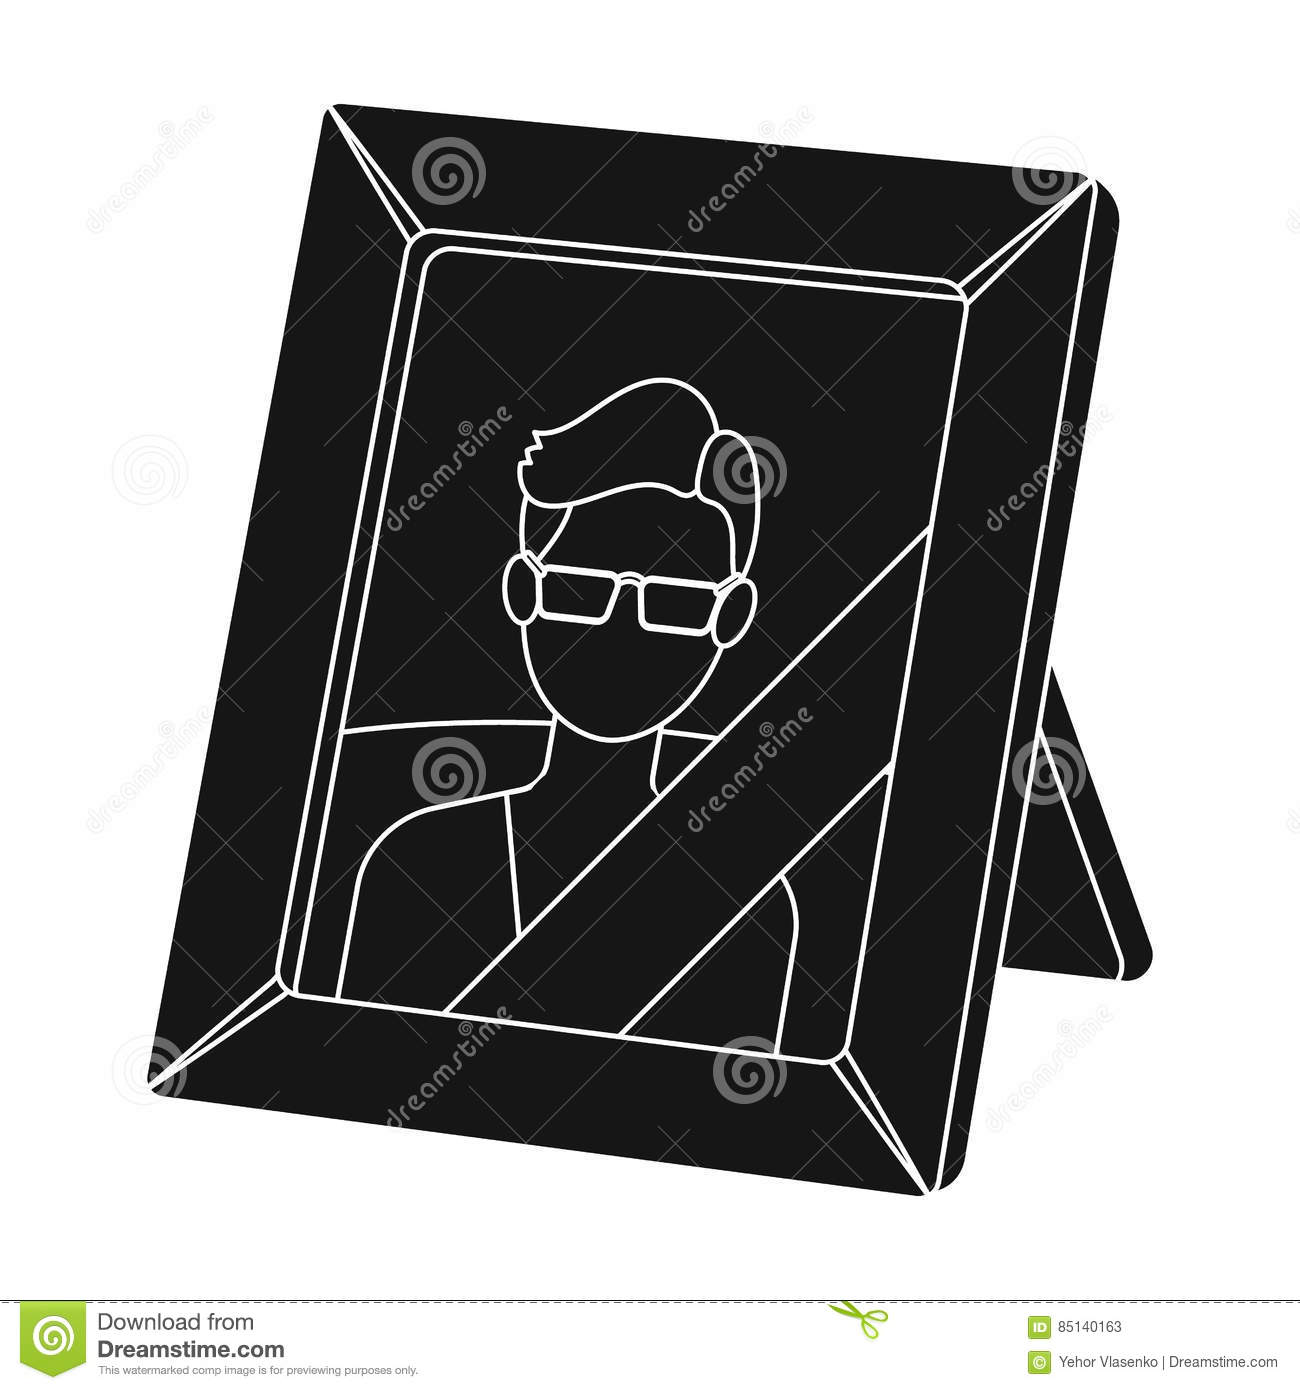 Portrait of deceased person icon in black style isolated on white background. Funeral ceremony symbol stock vector